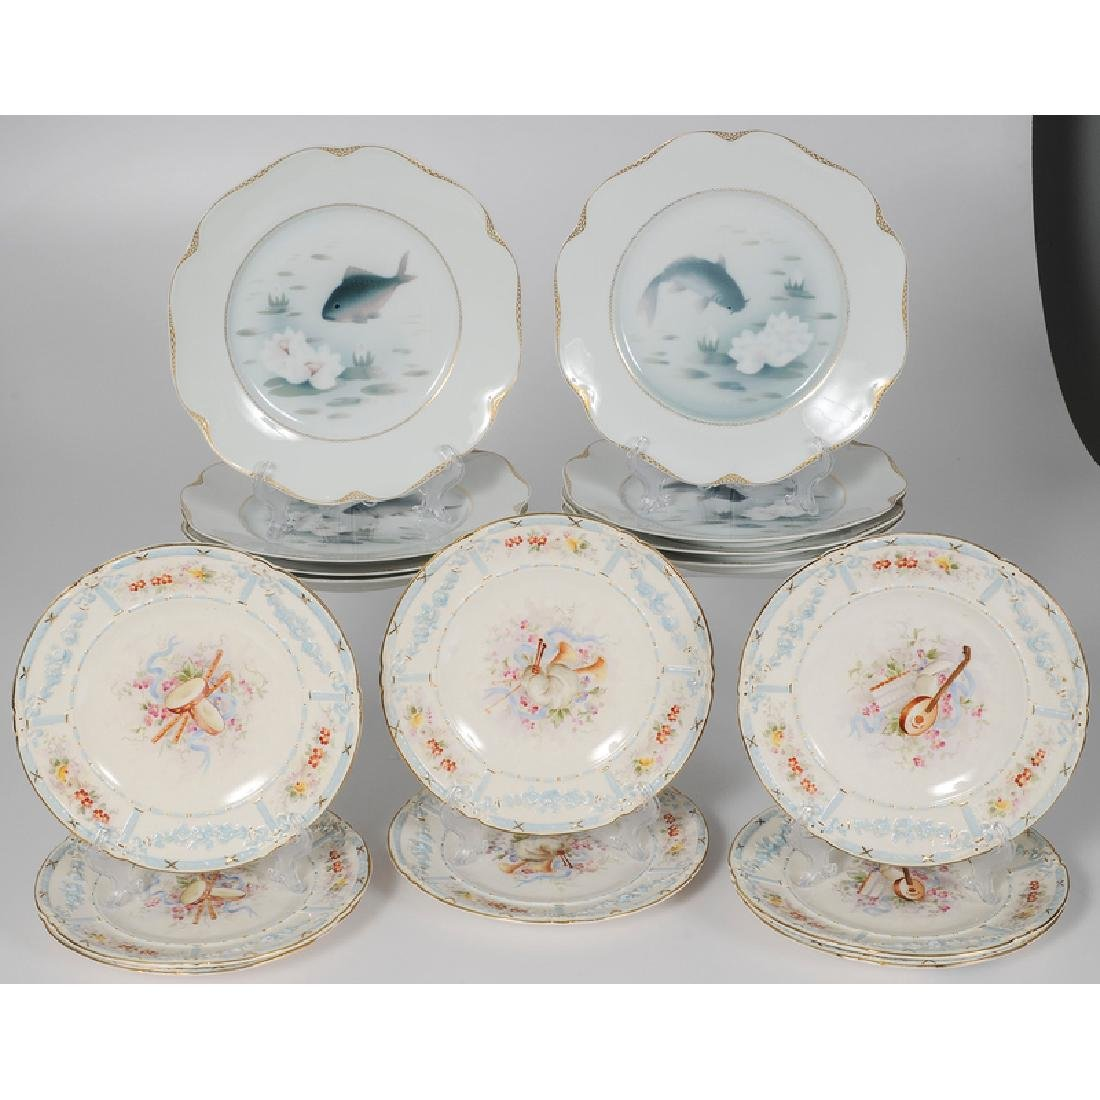 Rosenthal and Royal Bonn Lunch Plate Sets